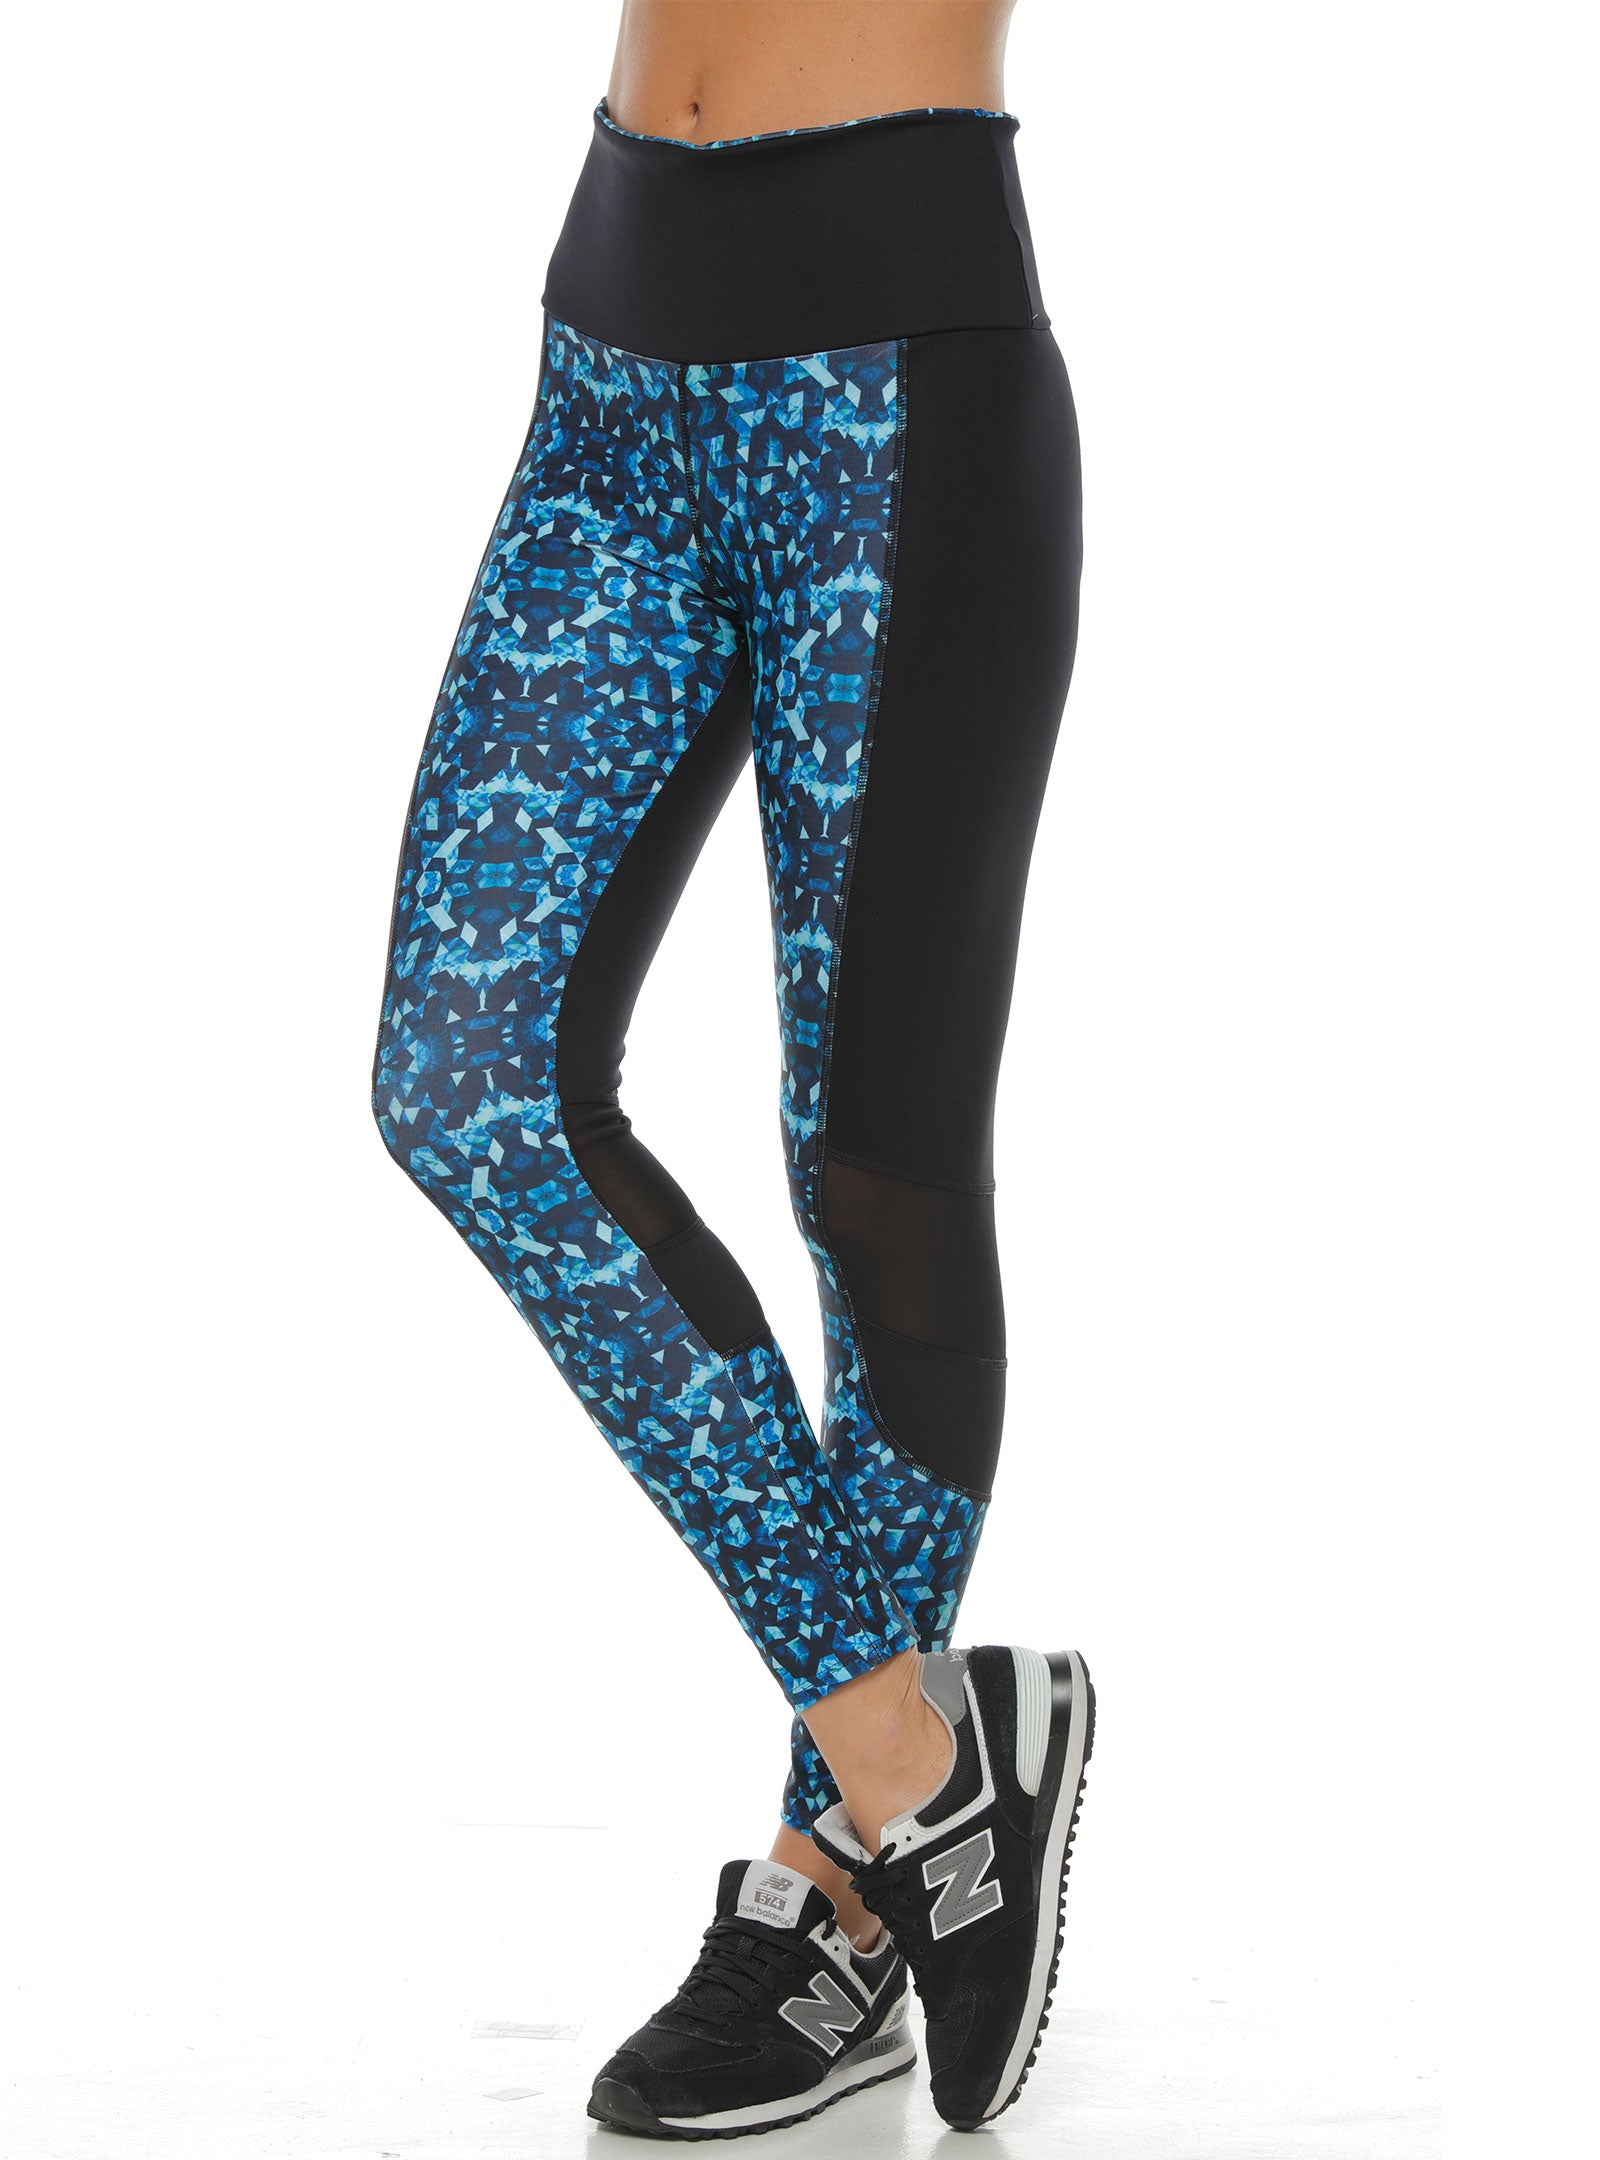 Leggings Ref: 4303